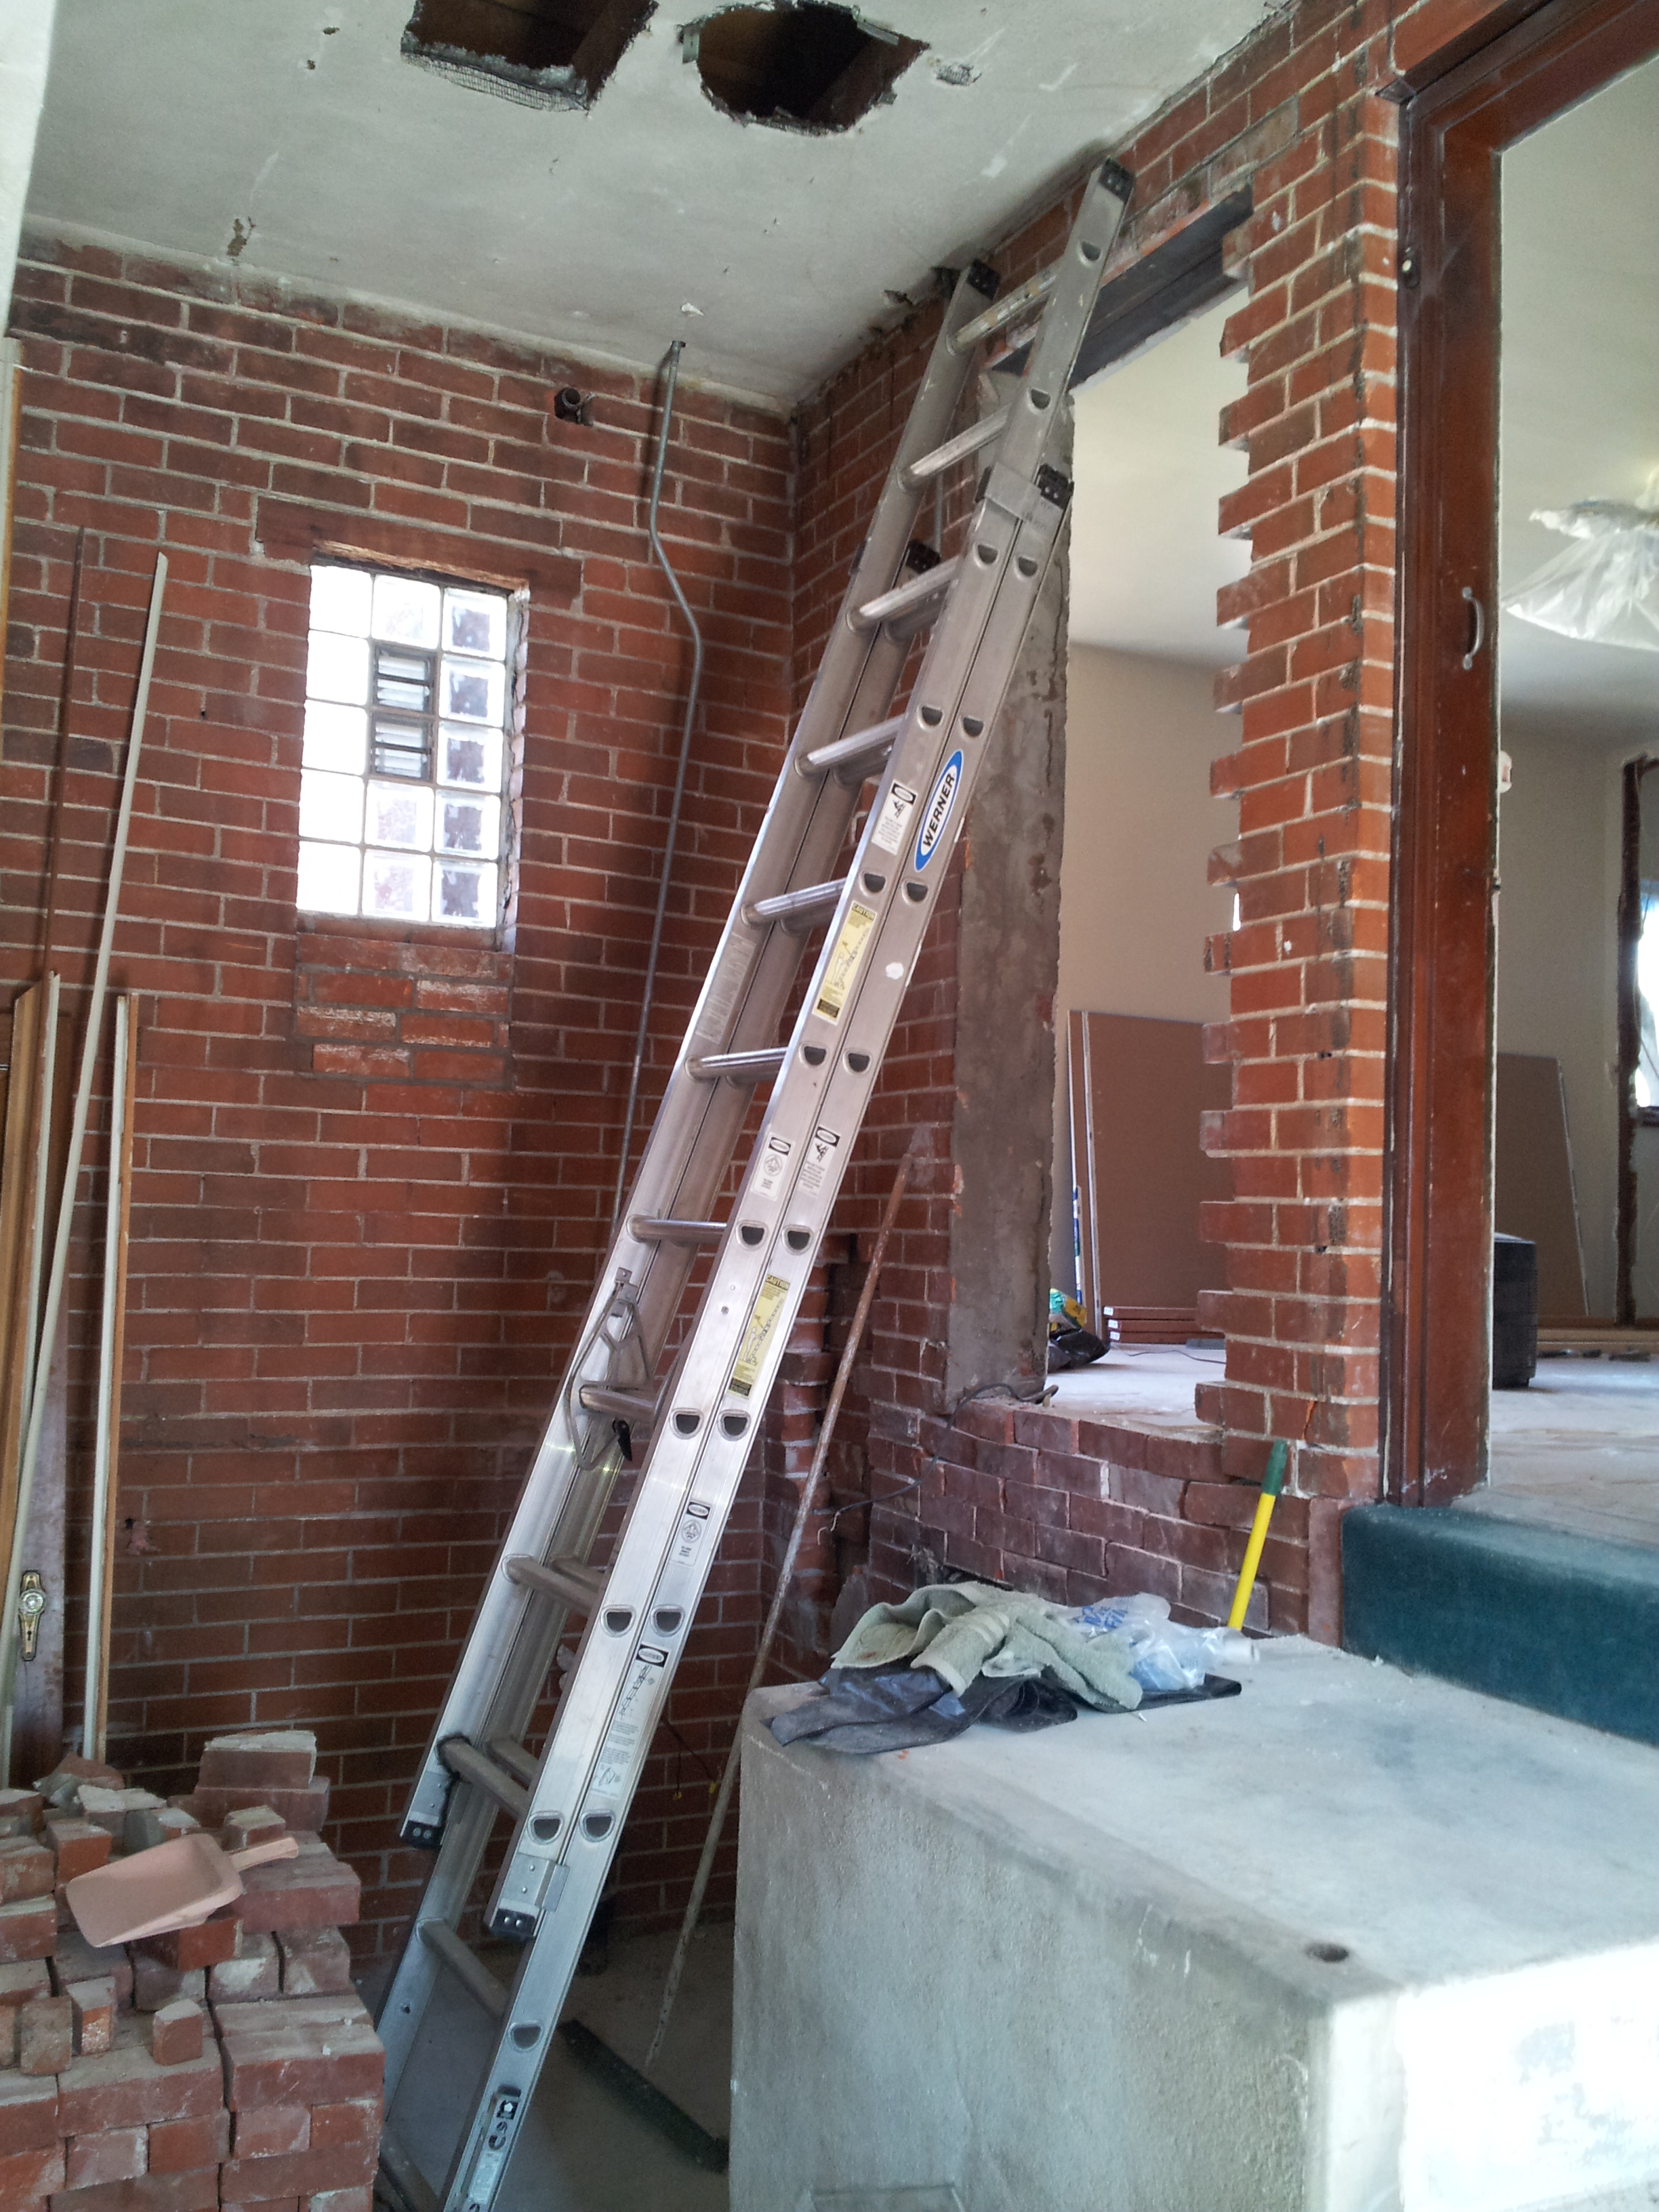 Existing entry door being relocated and filled in brick exterior